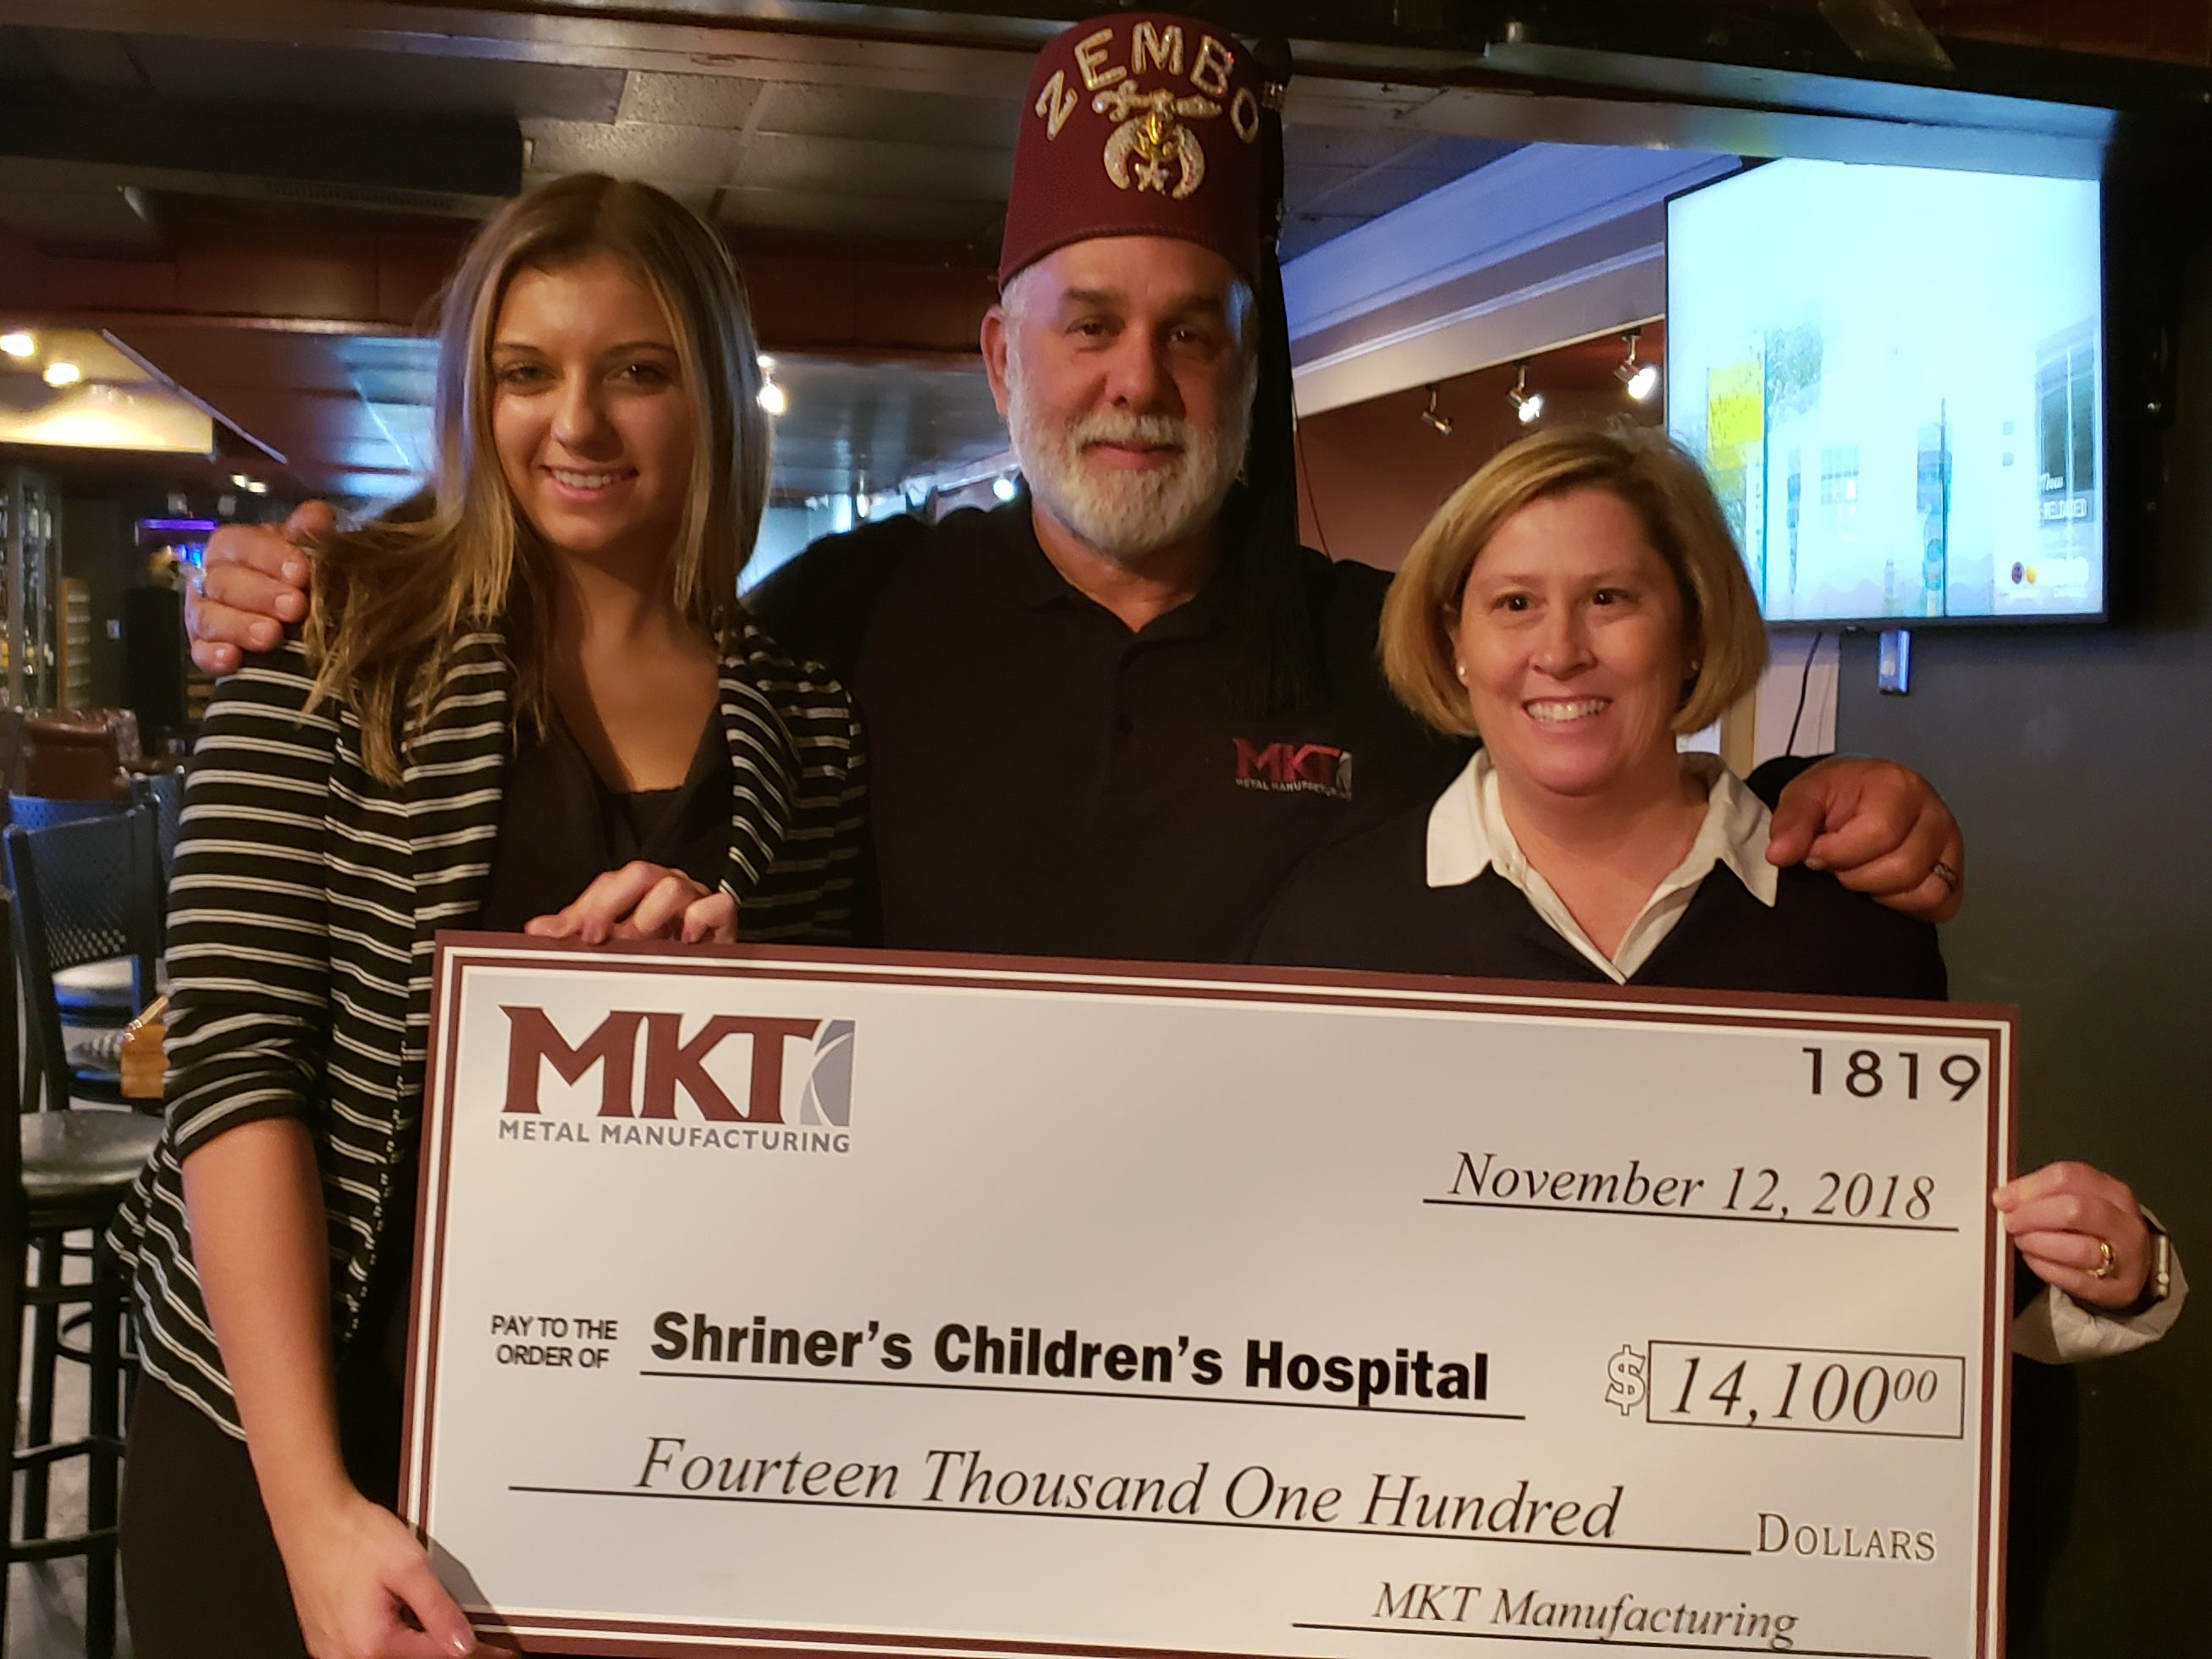 MKT Metal Manufacturing met at The Cove Restaurant with the York County Shrine Club to present the check to a Philadelphia hospital representative November 12th, 2018. Funds were raised through MKTÕs annual sporting clays fundraiser held on September 28th at Warrington Sporting Clays in Wellsville, PA. The Shriners Hospitals for Children¨ is a network of 22 non-profit medical facilities all across the United States that treat orthopedics, burn, cleft lip and plate, and spinal injuries at no cost to the family regardless of insurance status. Pictured are, from left, Samantha Melhorn, Marketing Specialist at MKT, Ken Brown, Shriner and President/CEO of MKT and Bonnie Meister, Development Officer for Shriners Hospitals - Philadephia. submitted